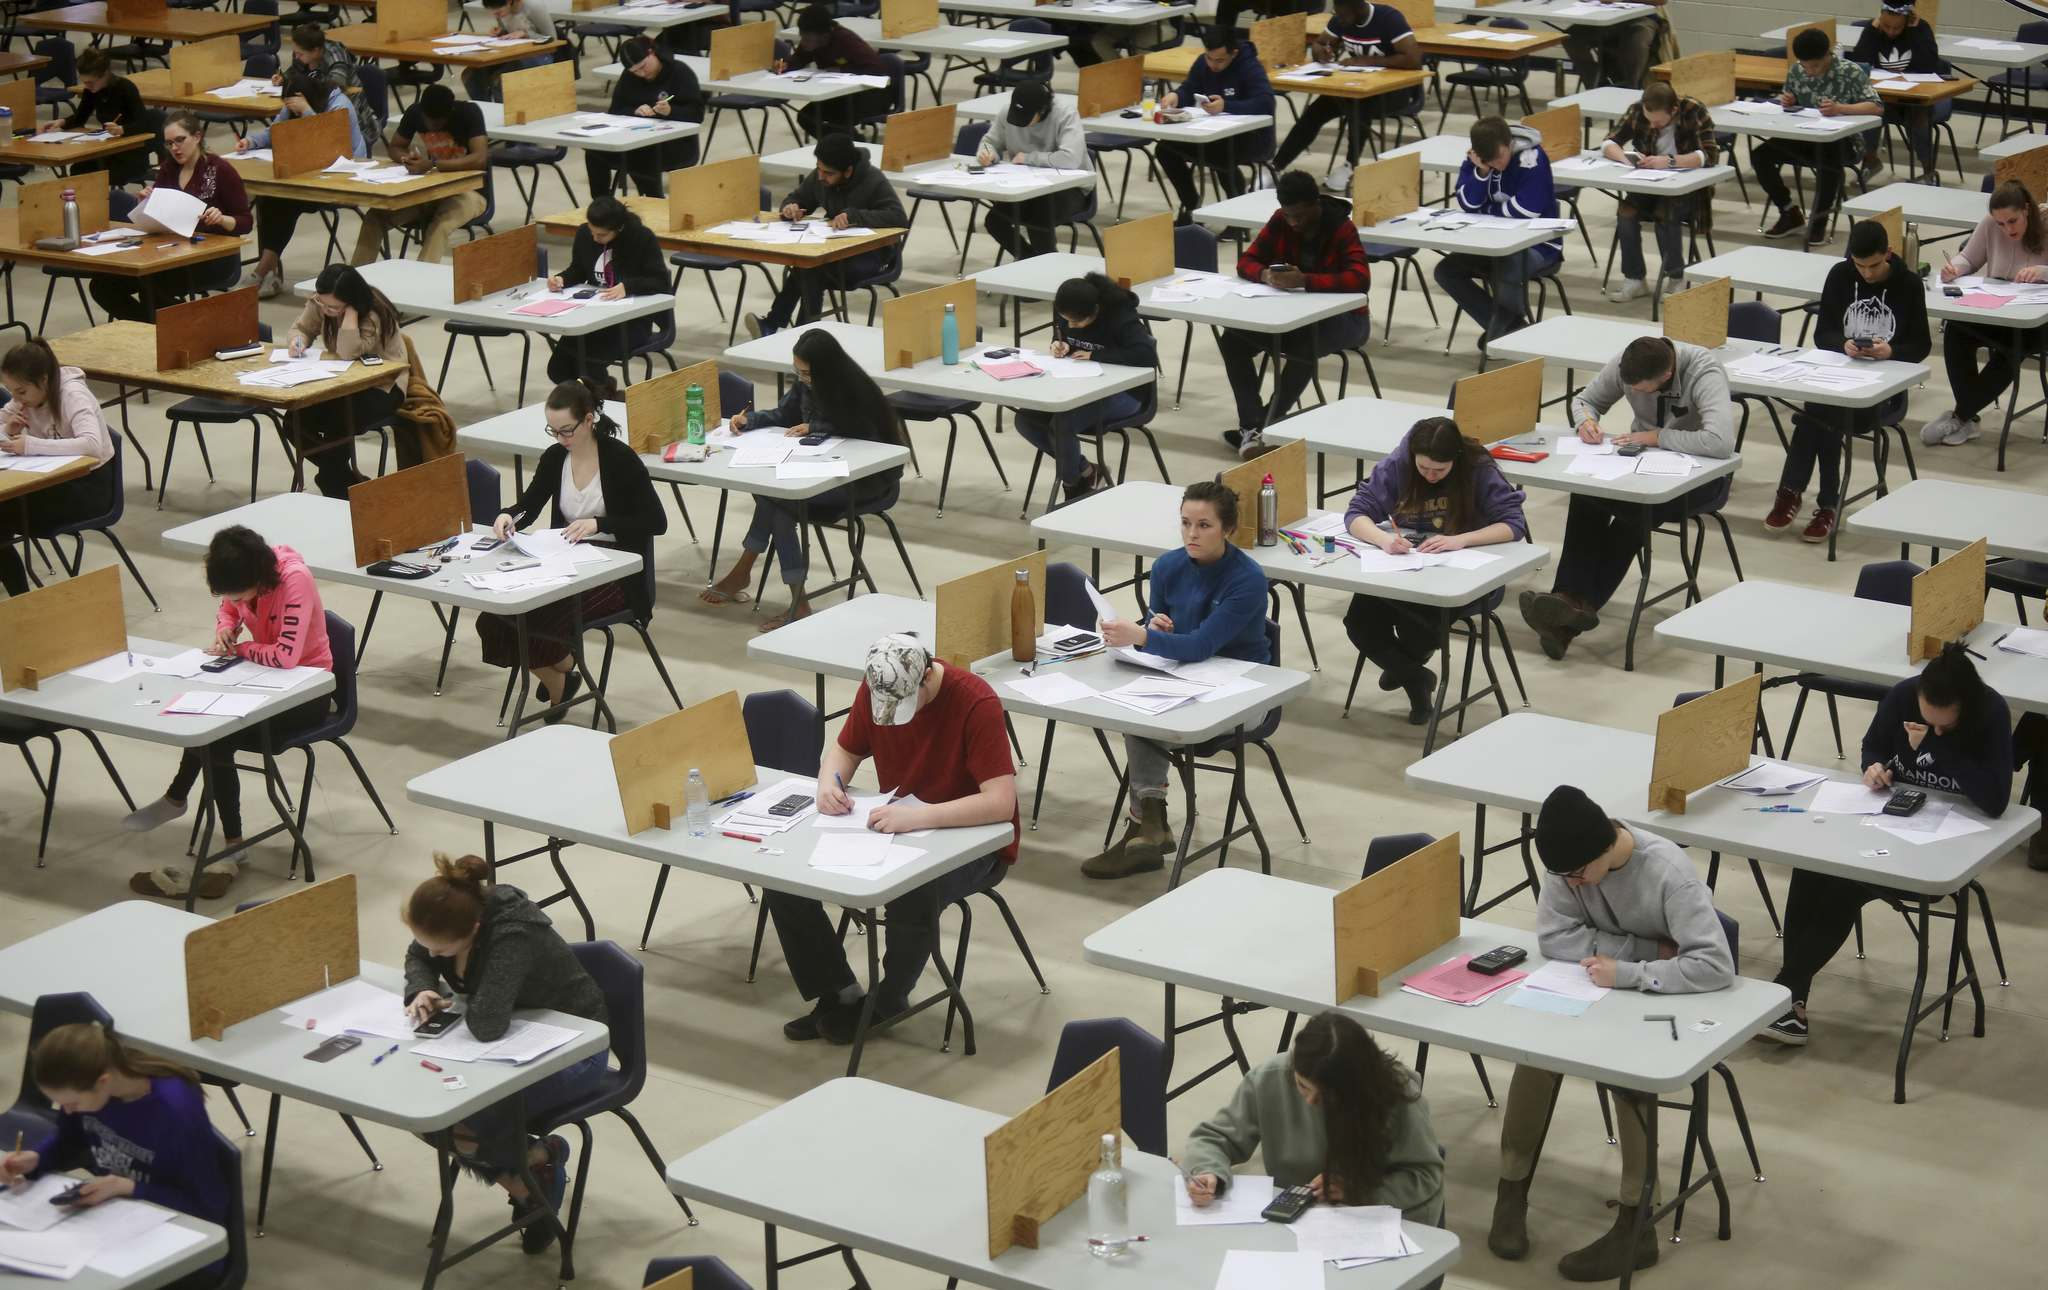 (Tim Smith / The Brandon Sun files)</p><p>Getting to the root of why students cheat is important. </p>